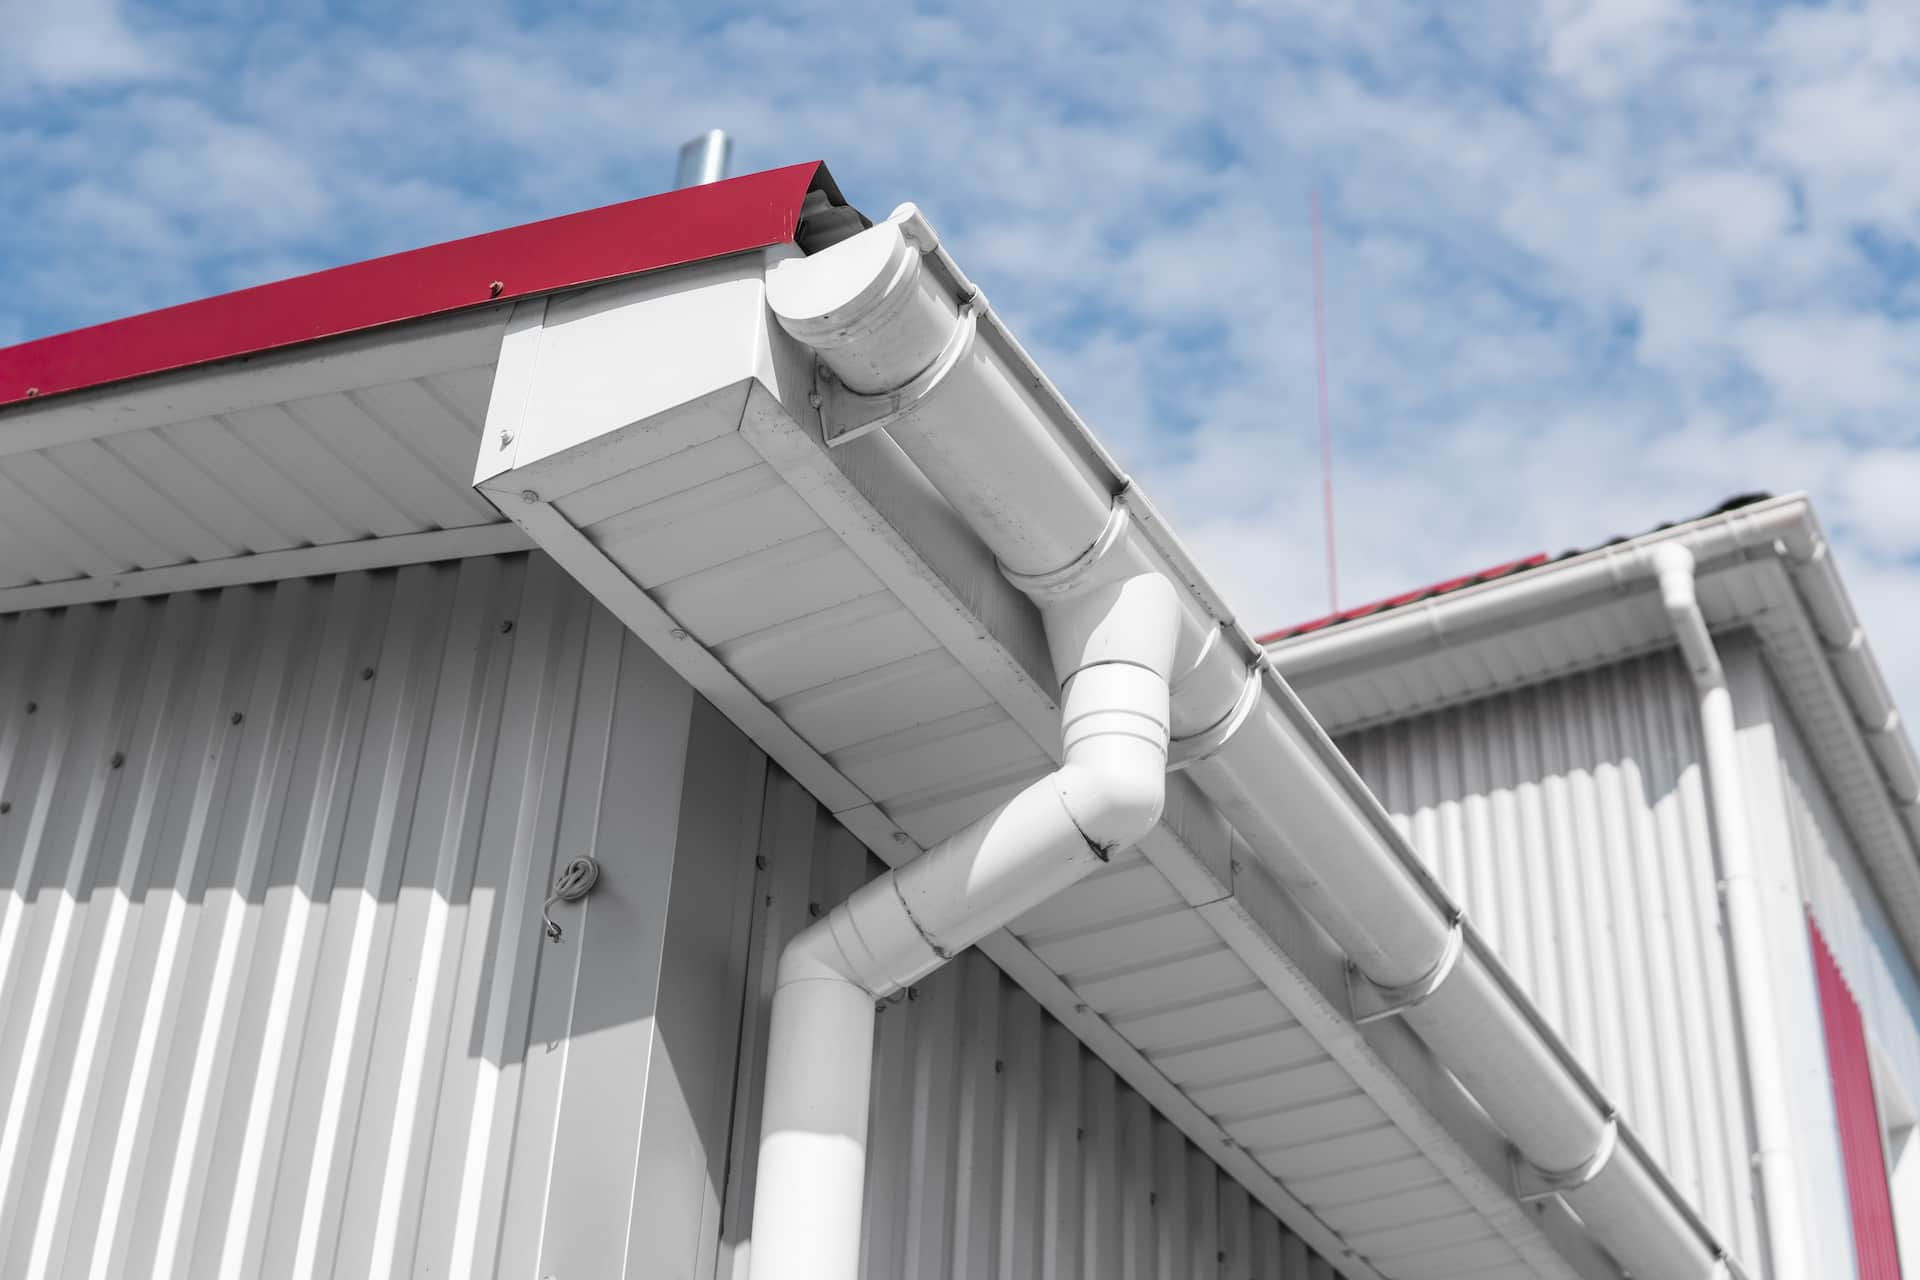 Guttering replacement Fort Collins CO - Severe Weather Roofing & Restoration